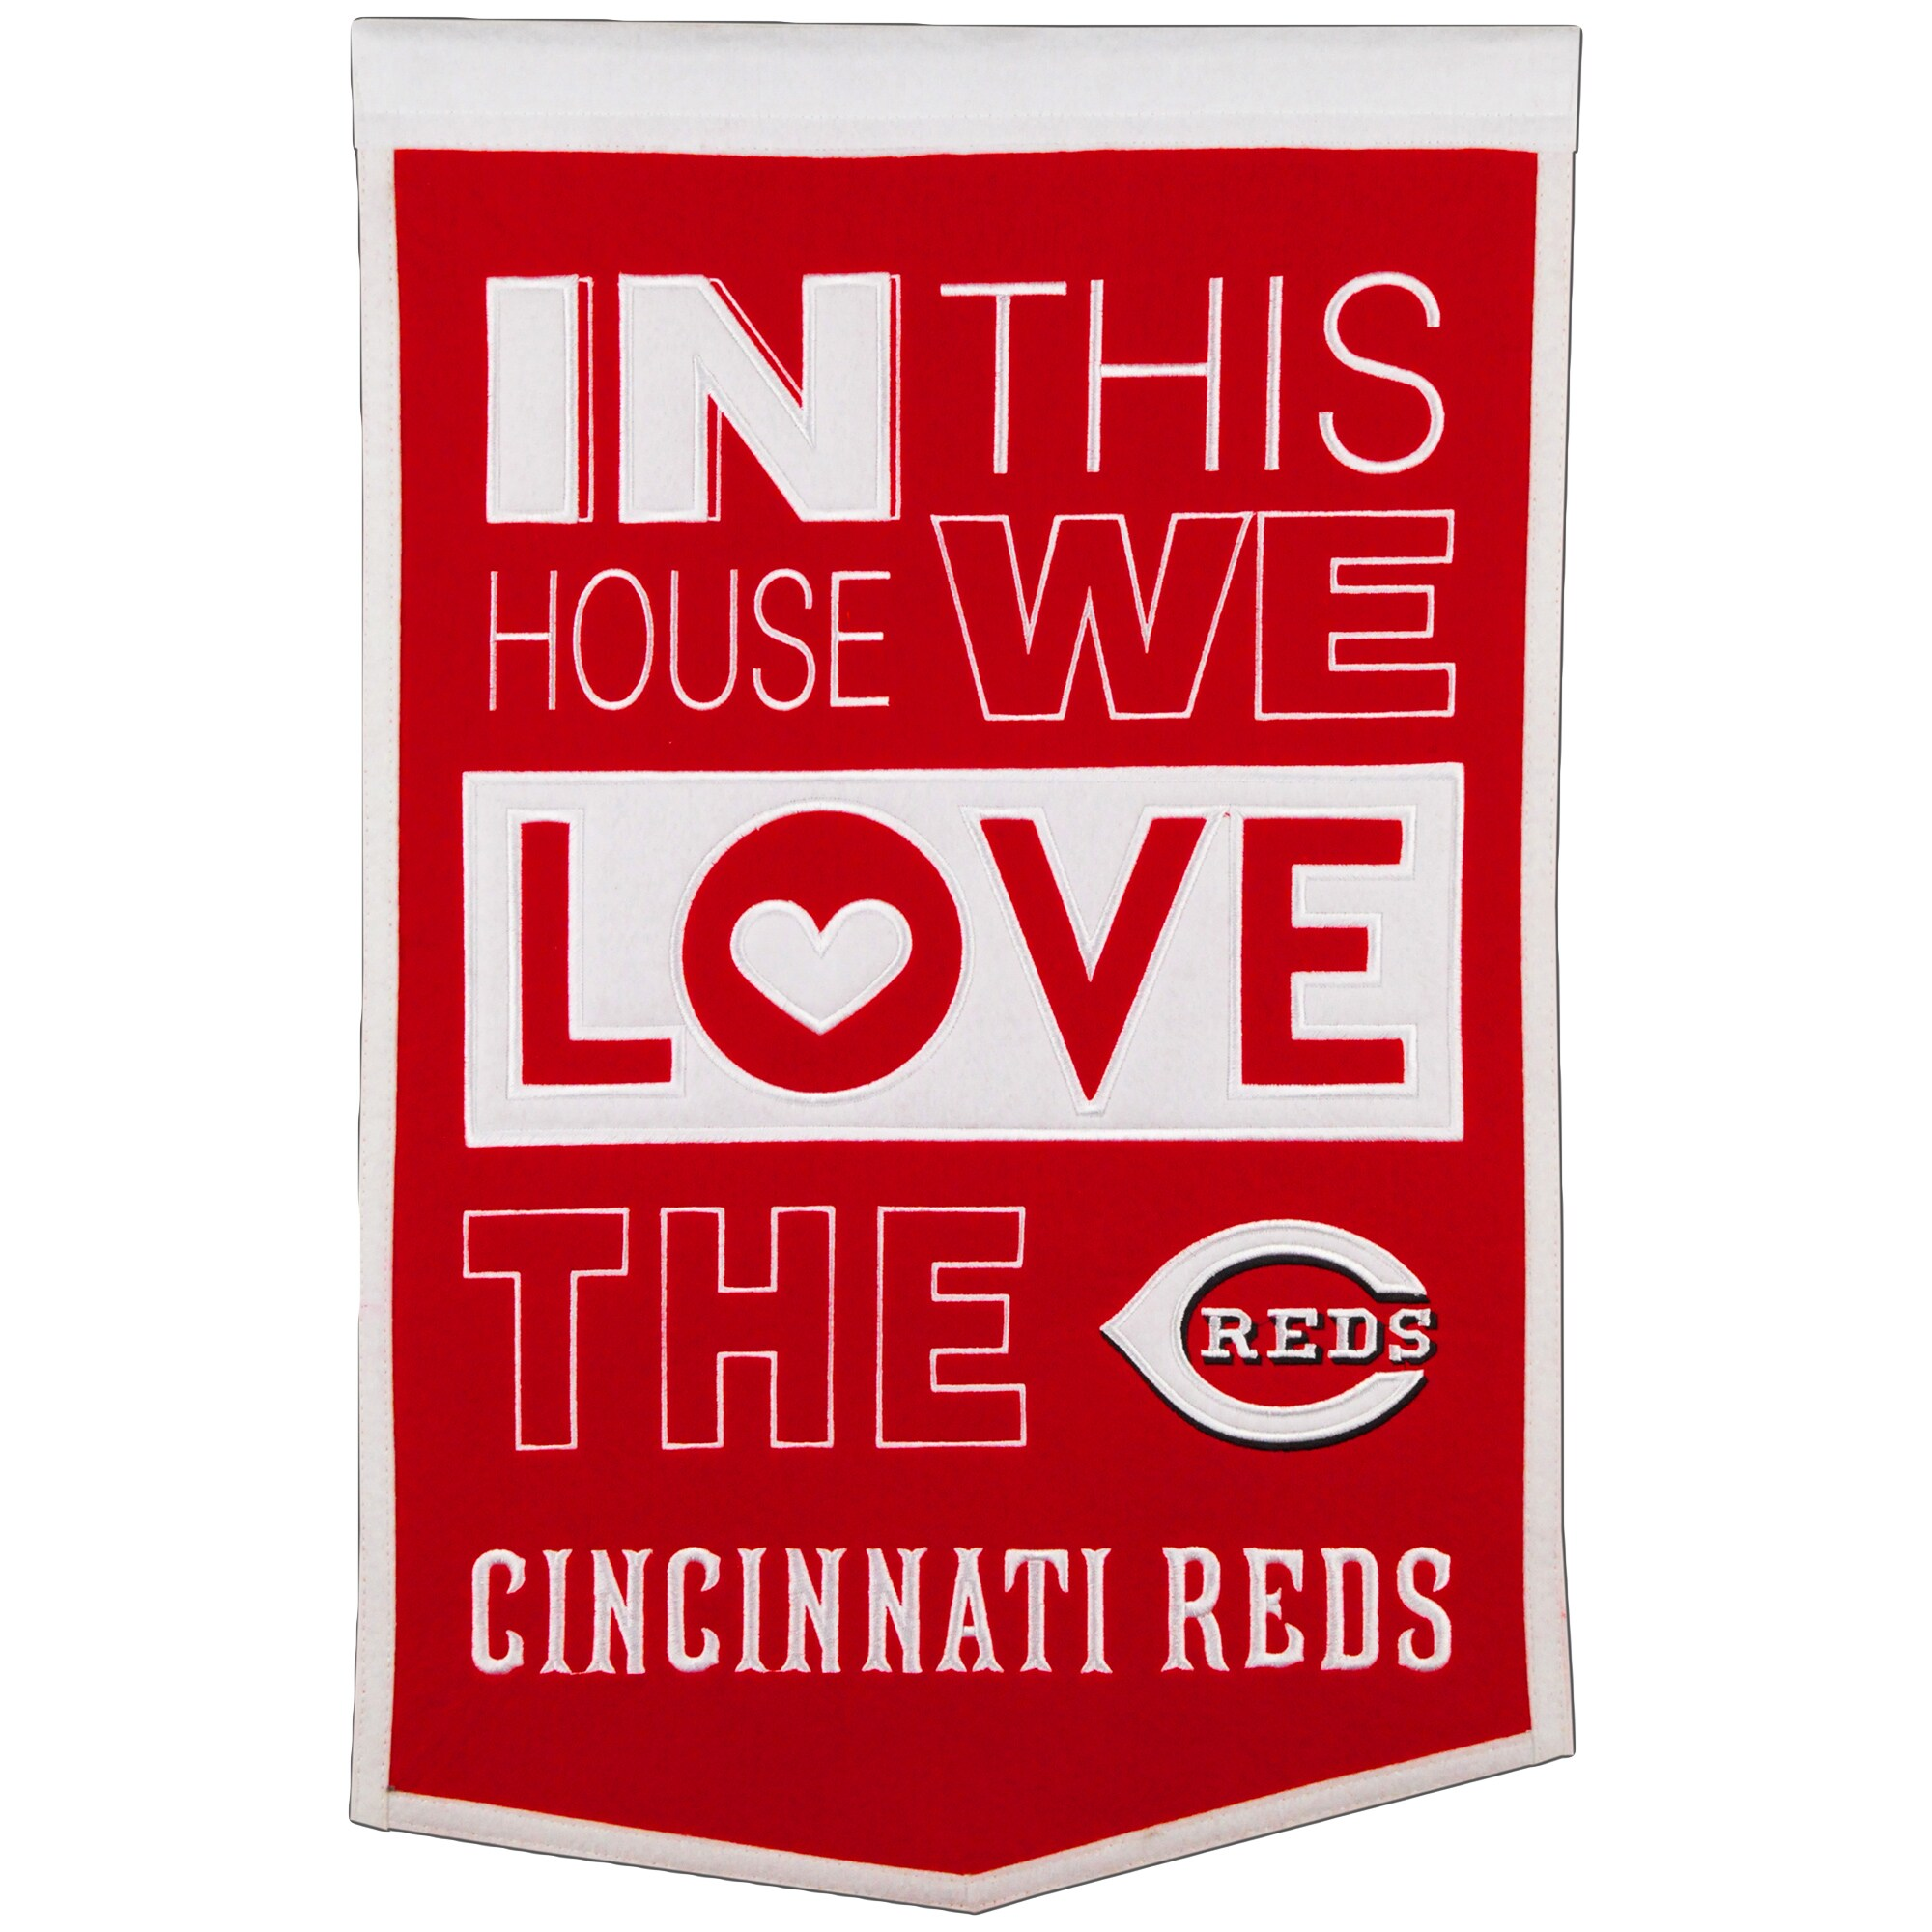 Cincinnati Reds 15'' x 24'' Home Banner - Red/White